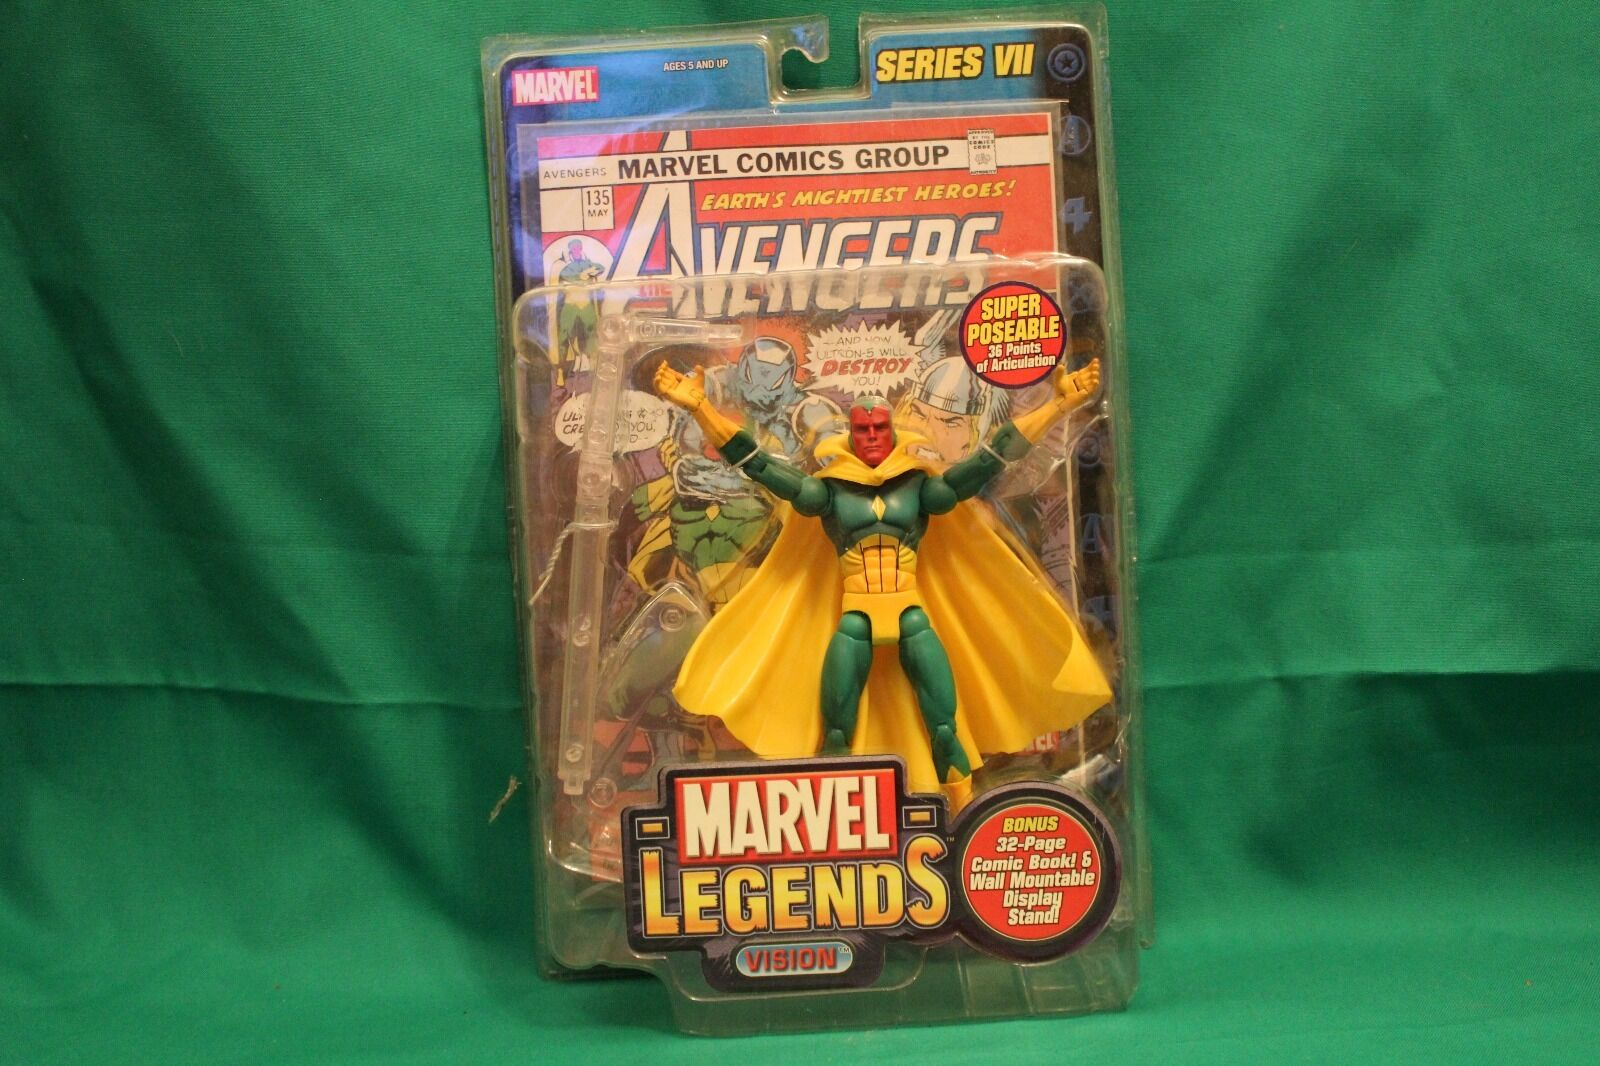 Marvel Legends Series VII Vision (2004)